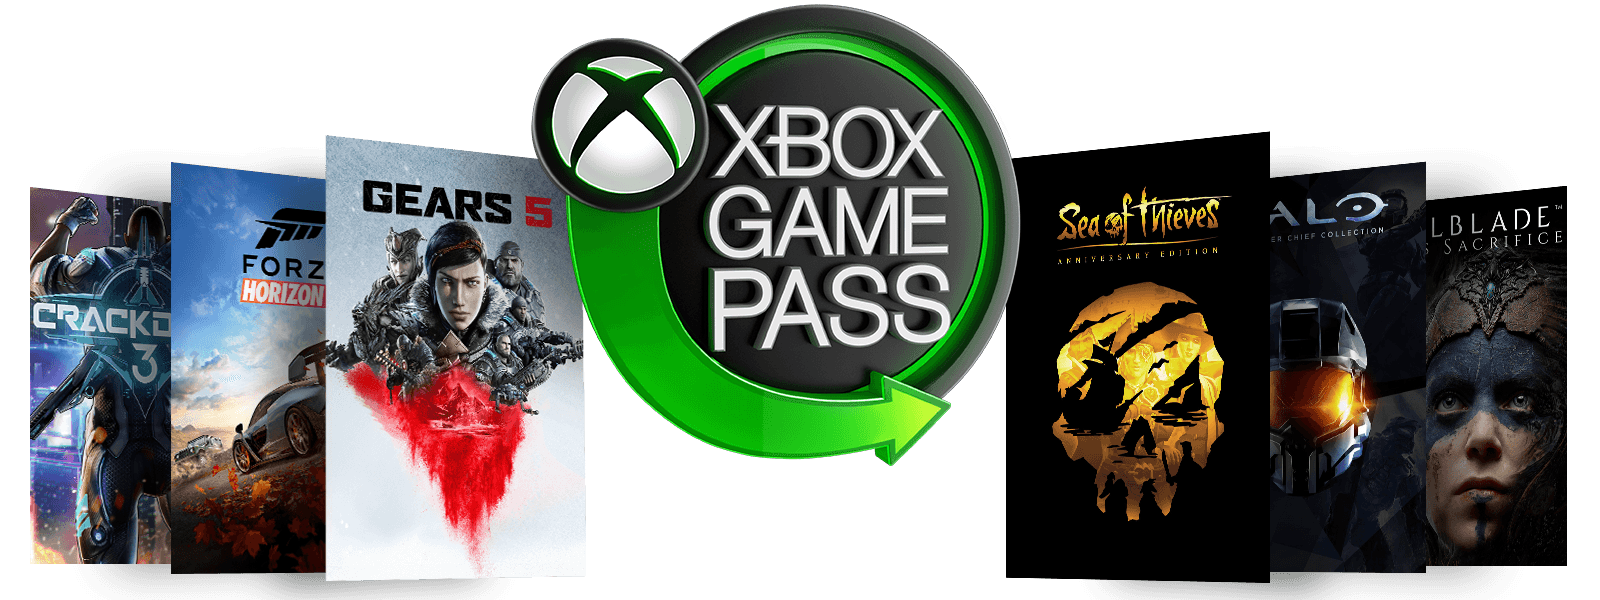 霓虹燈 Xbox Game Pass 標誌由 Forza Horizon 4、Playerunknown Battleground、Crackdown 3、sea of thieves anniversary edition、halo 和 Hellbade: senua's sacrifice 的包裝圖所圍繞著